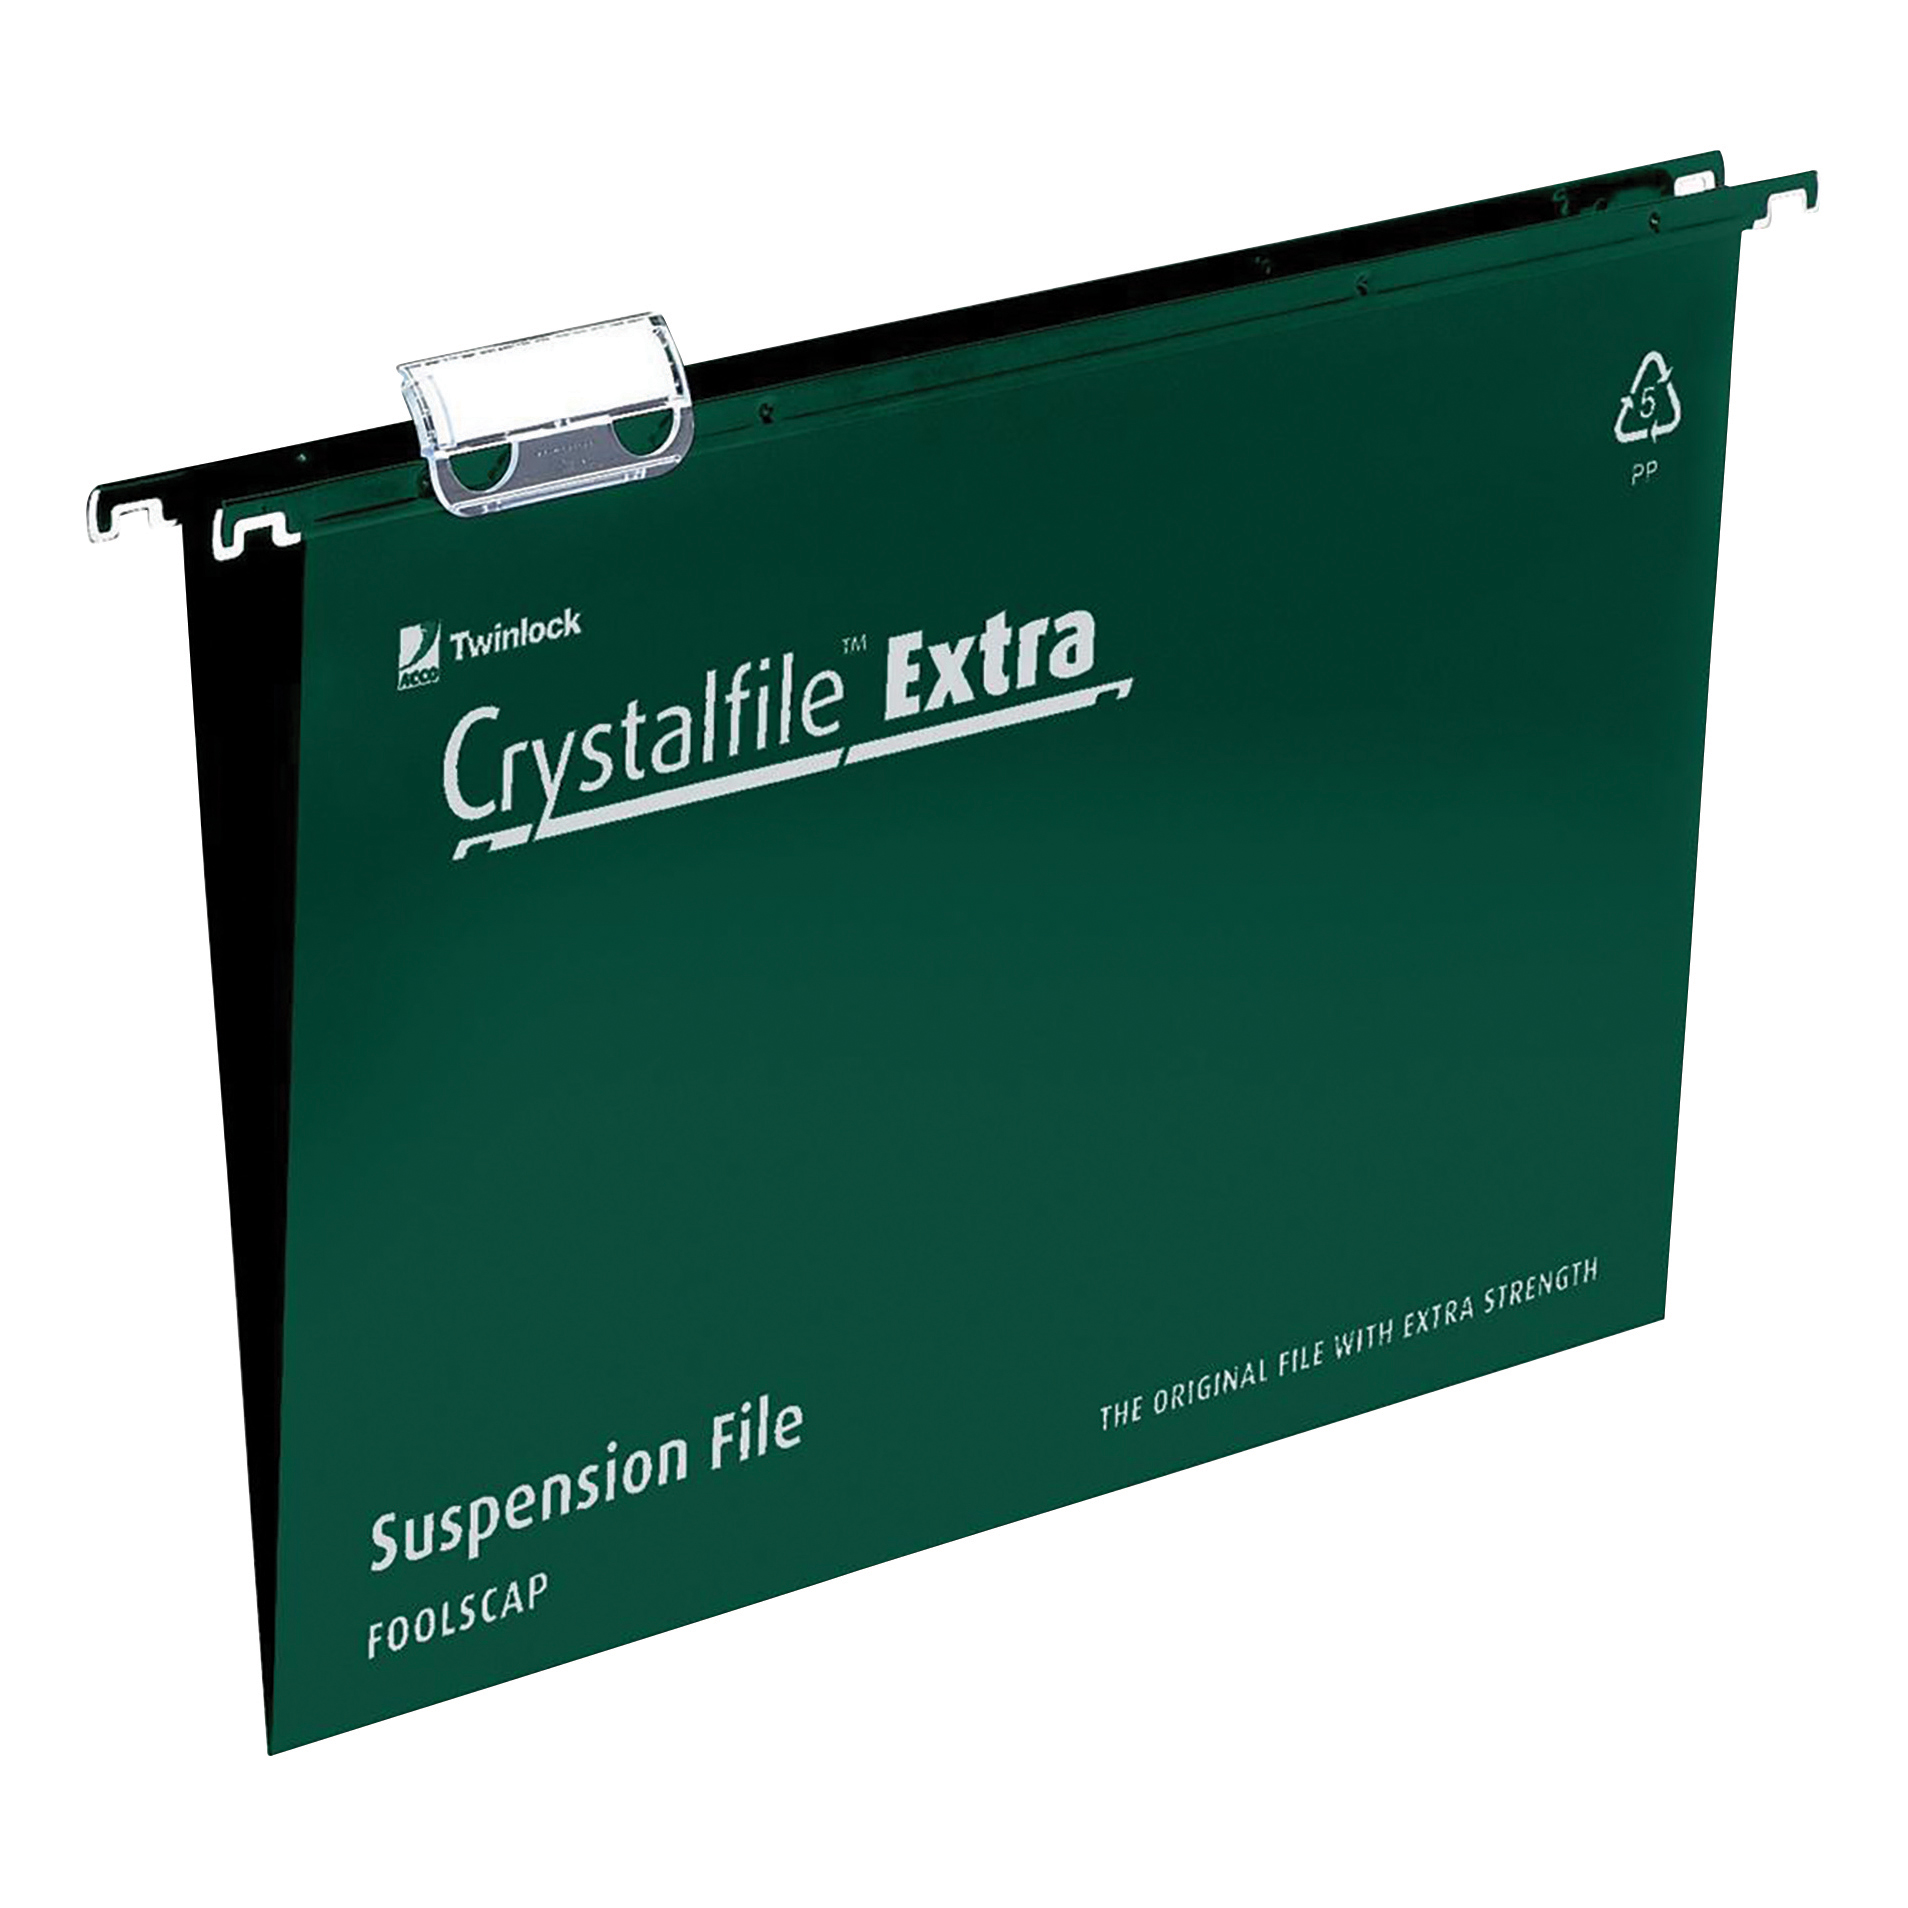 Rexel Crystalfile Extra Suspension File Polypropylene 15mm V-base Foolscap Green Ref 70628 [Pack 25]